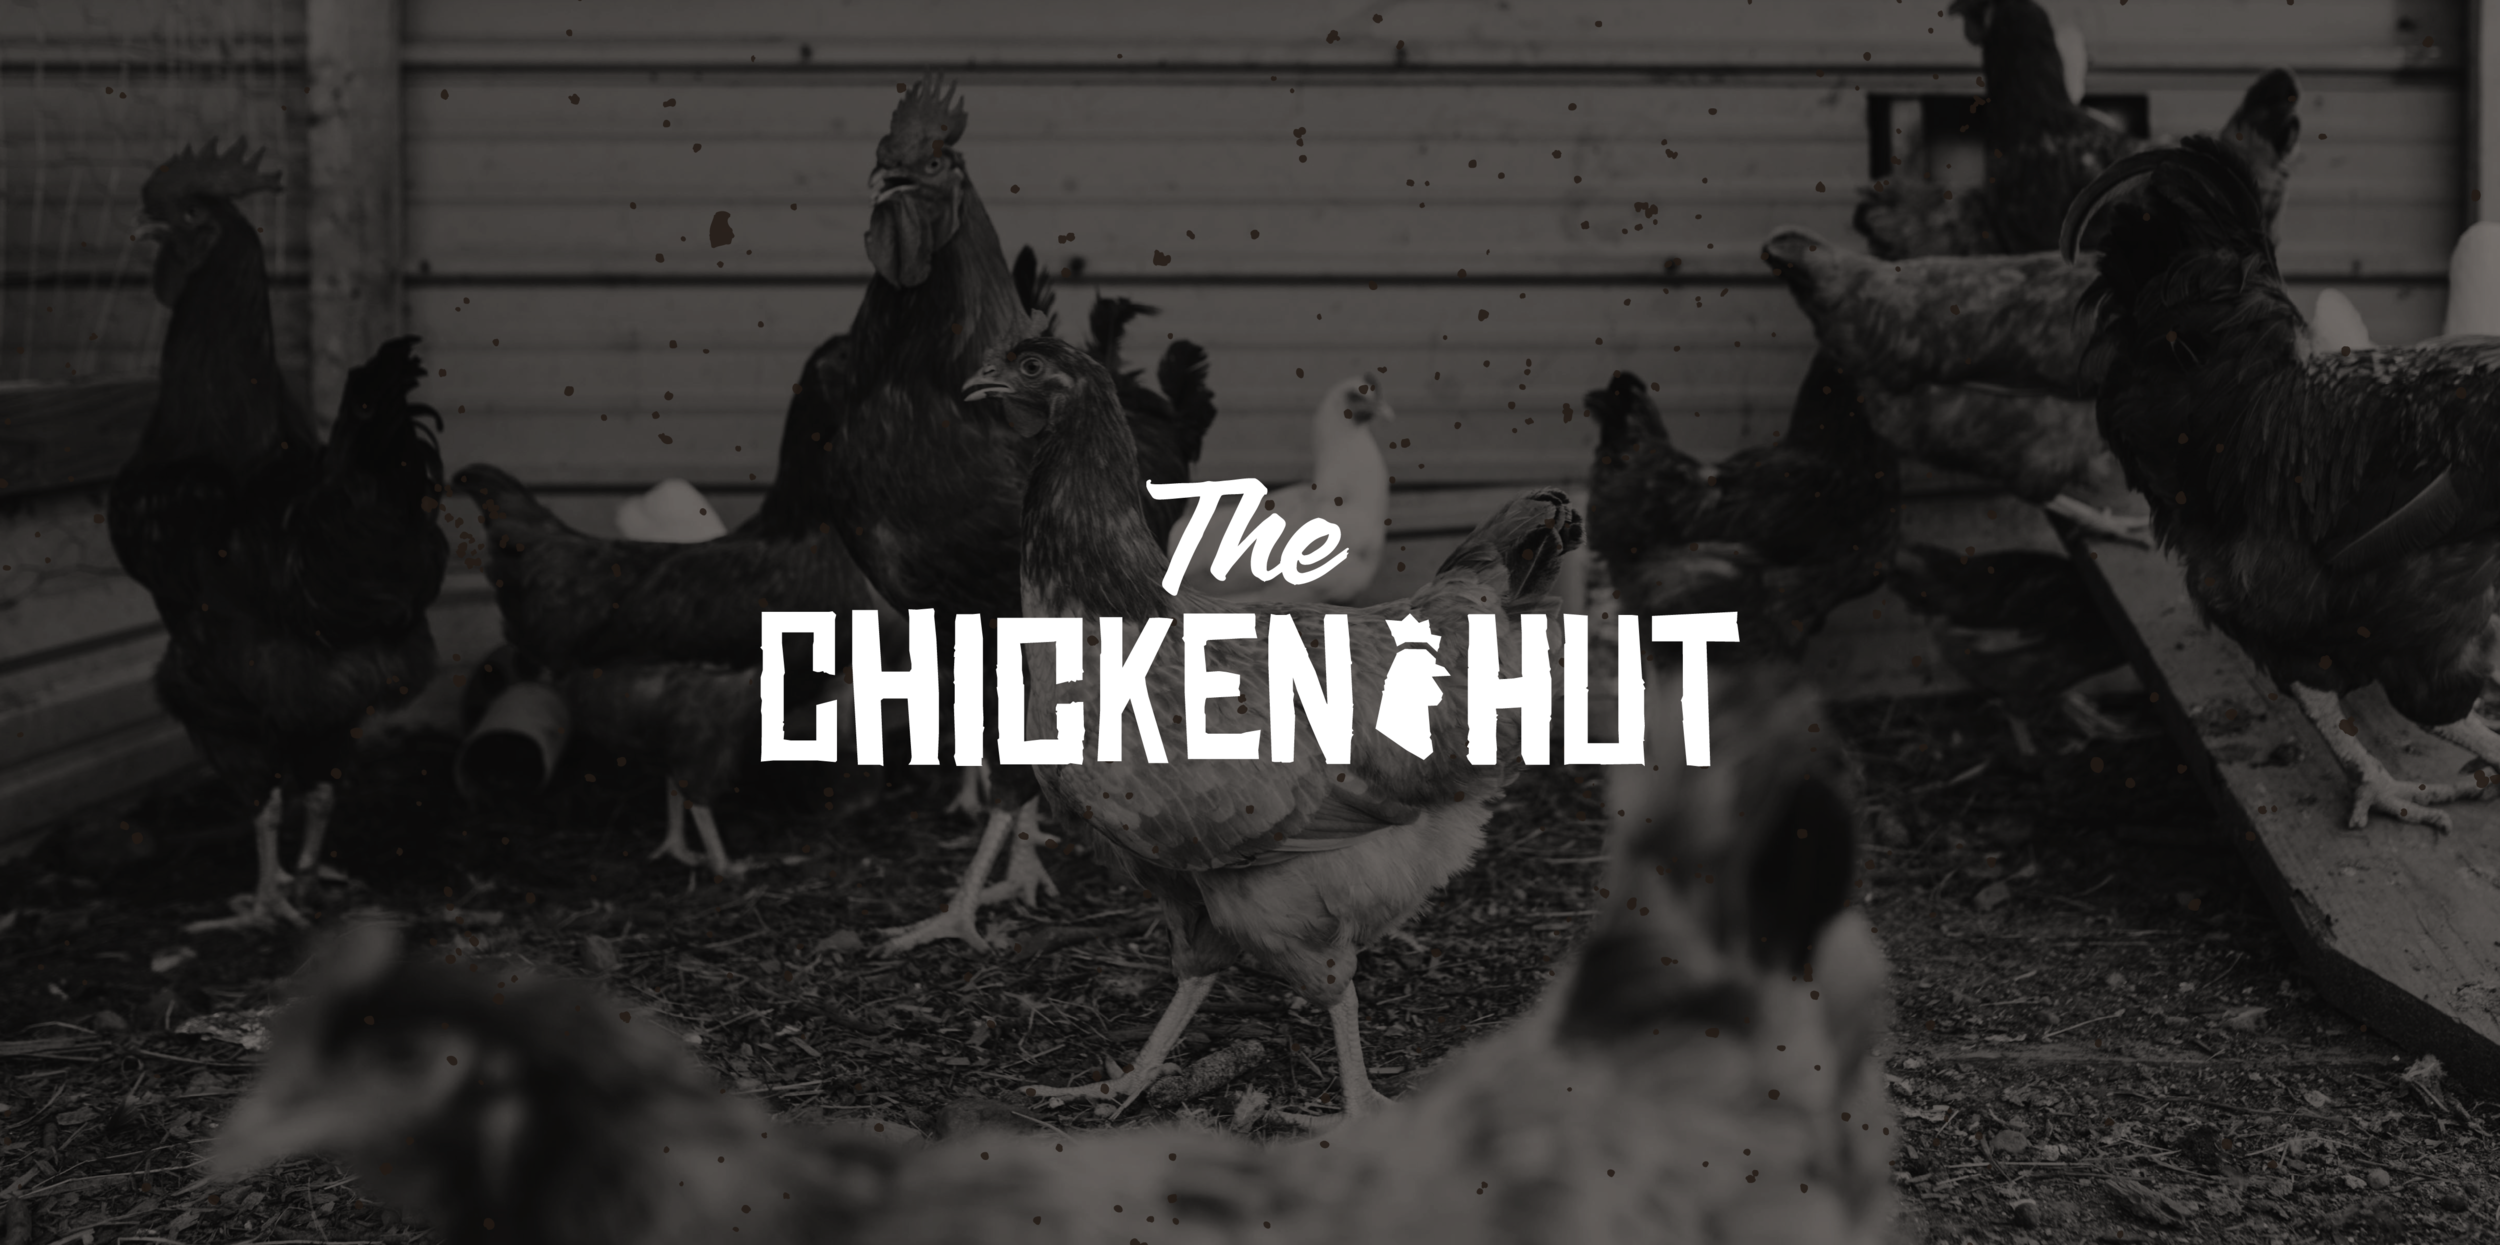 logo_photo2_chickenhut4-01.png